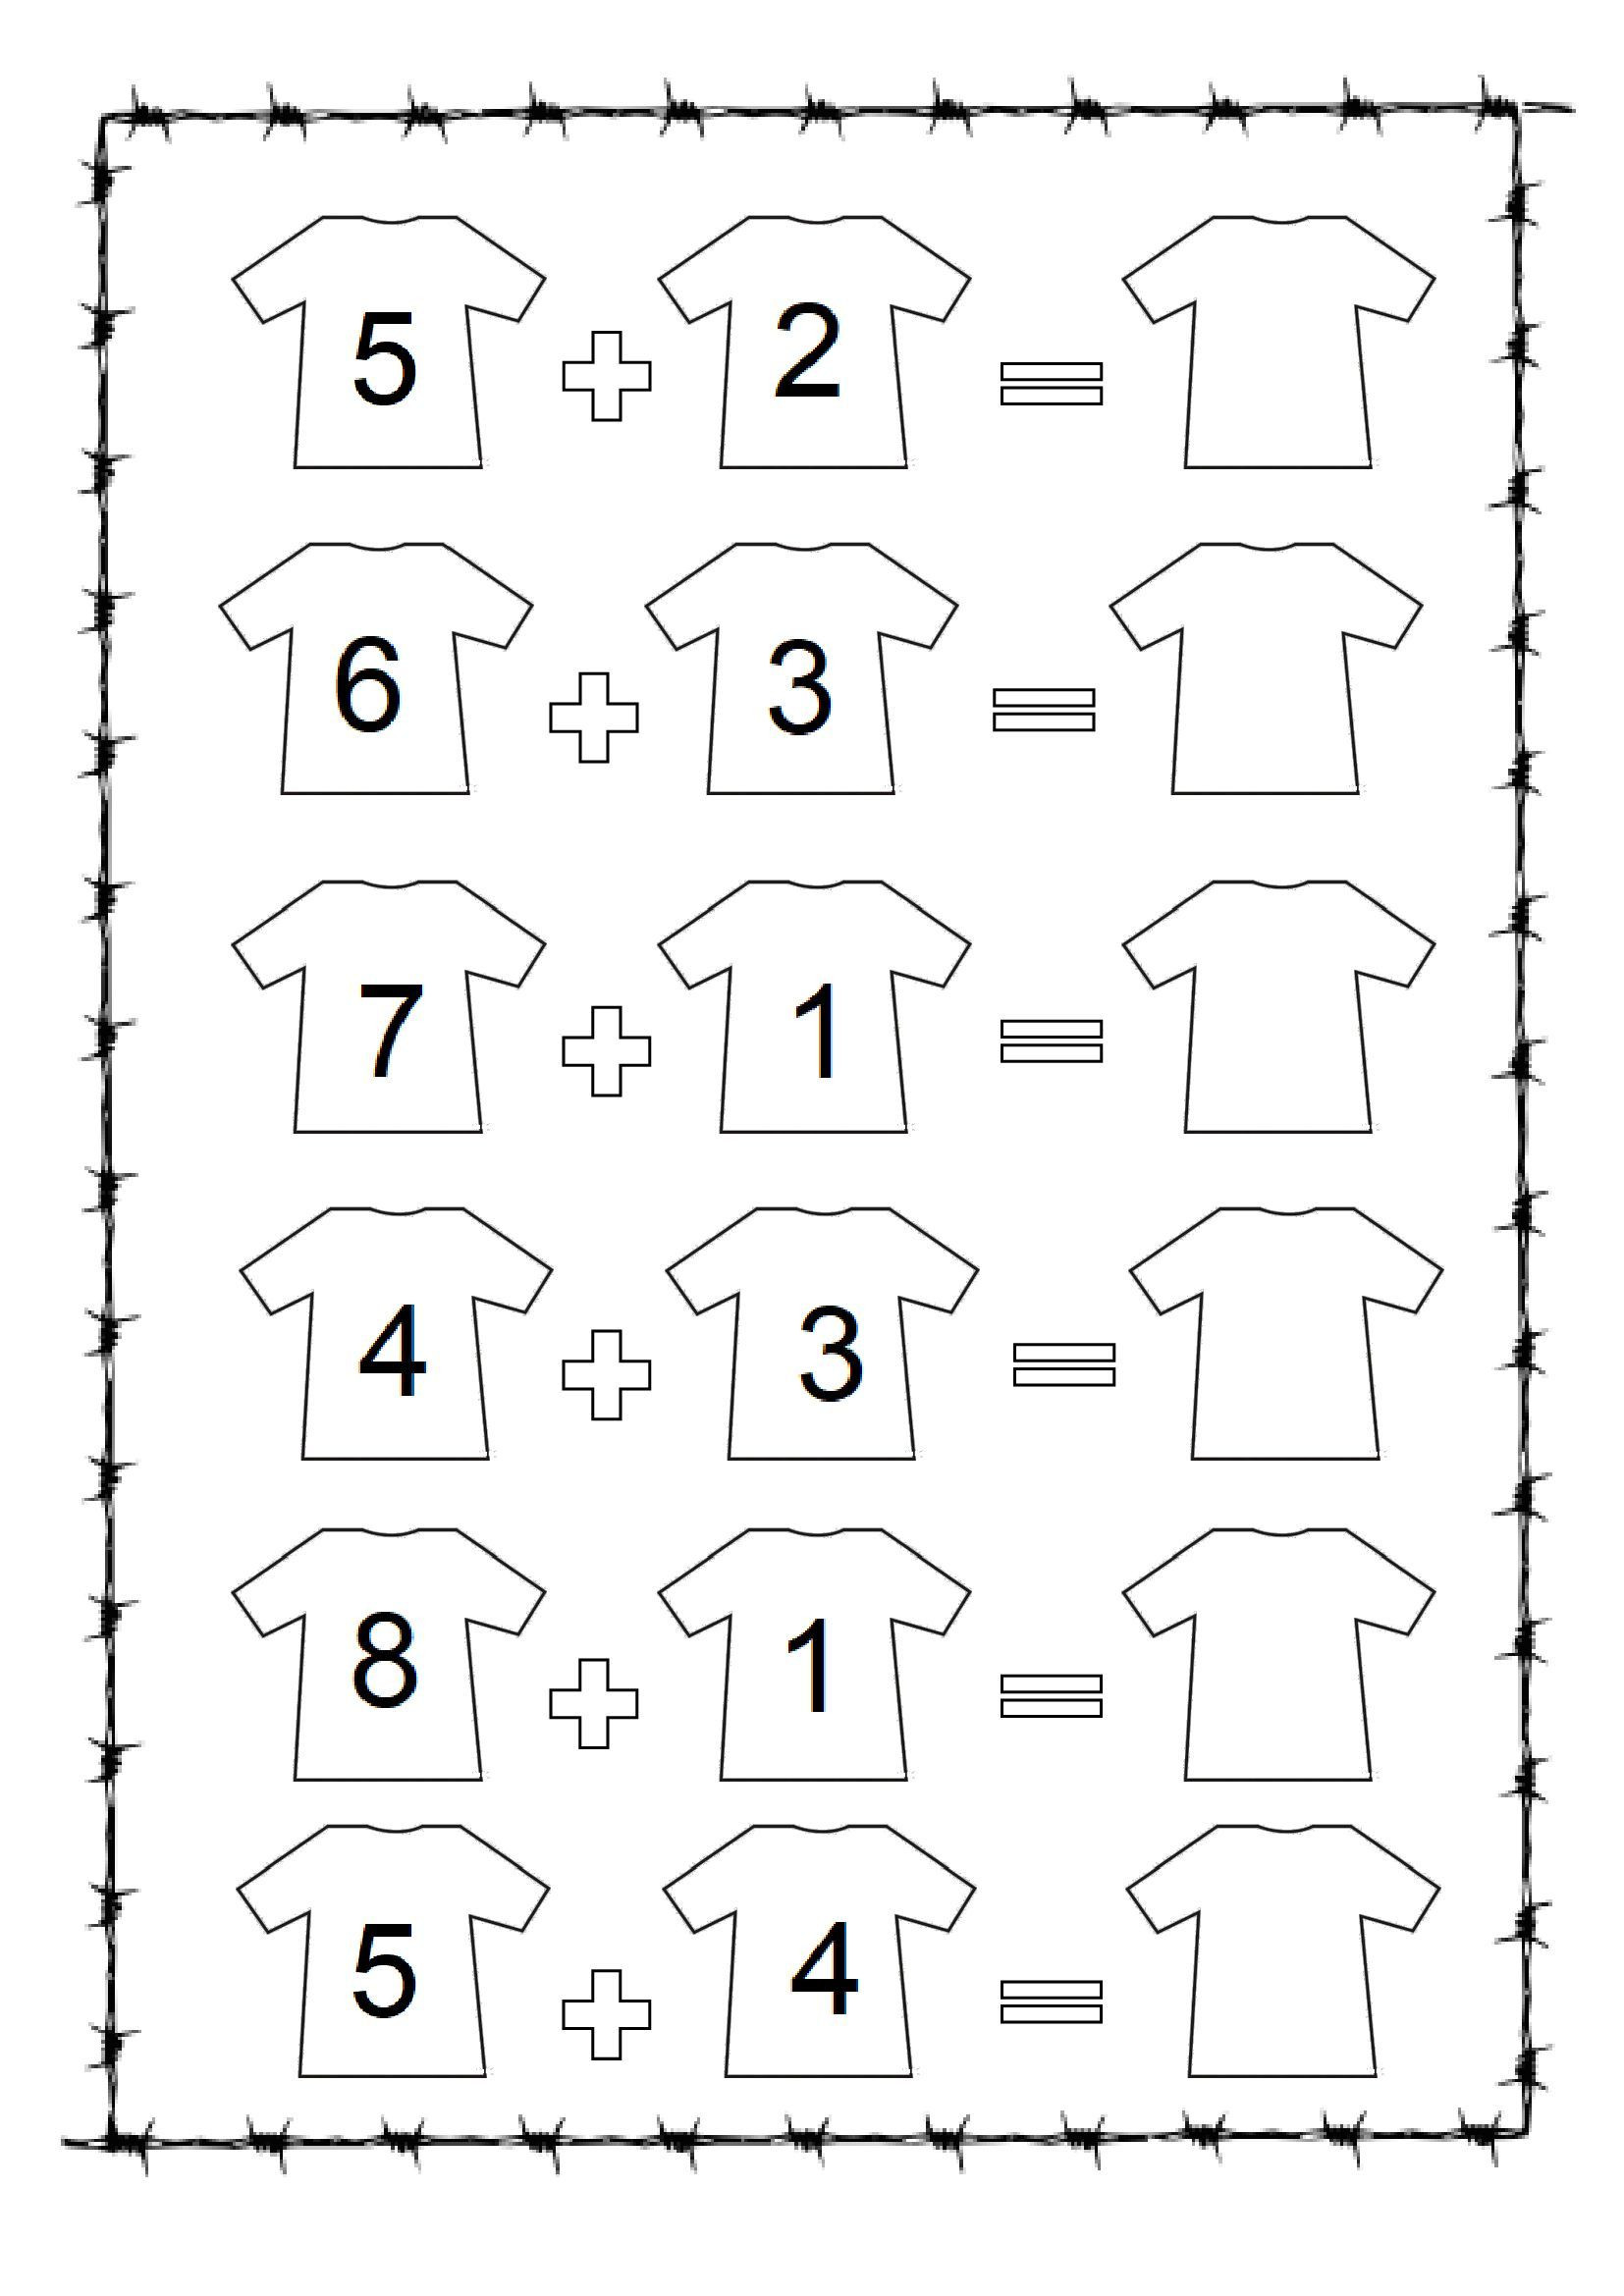 Kindergarten Math Worksheet Pdf Missing Number Worksheet Pdf Easy and Printable